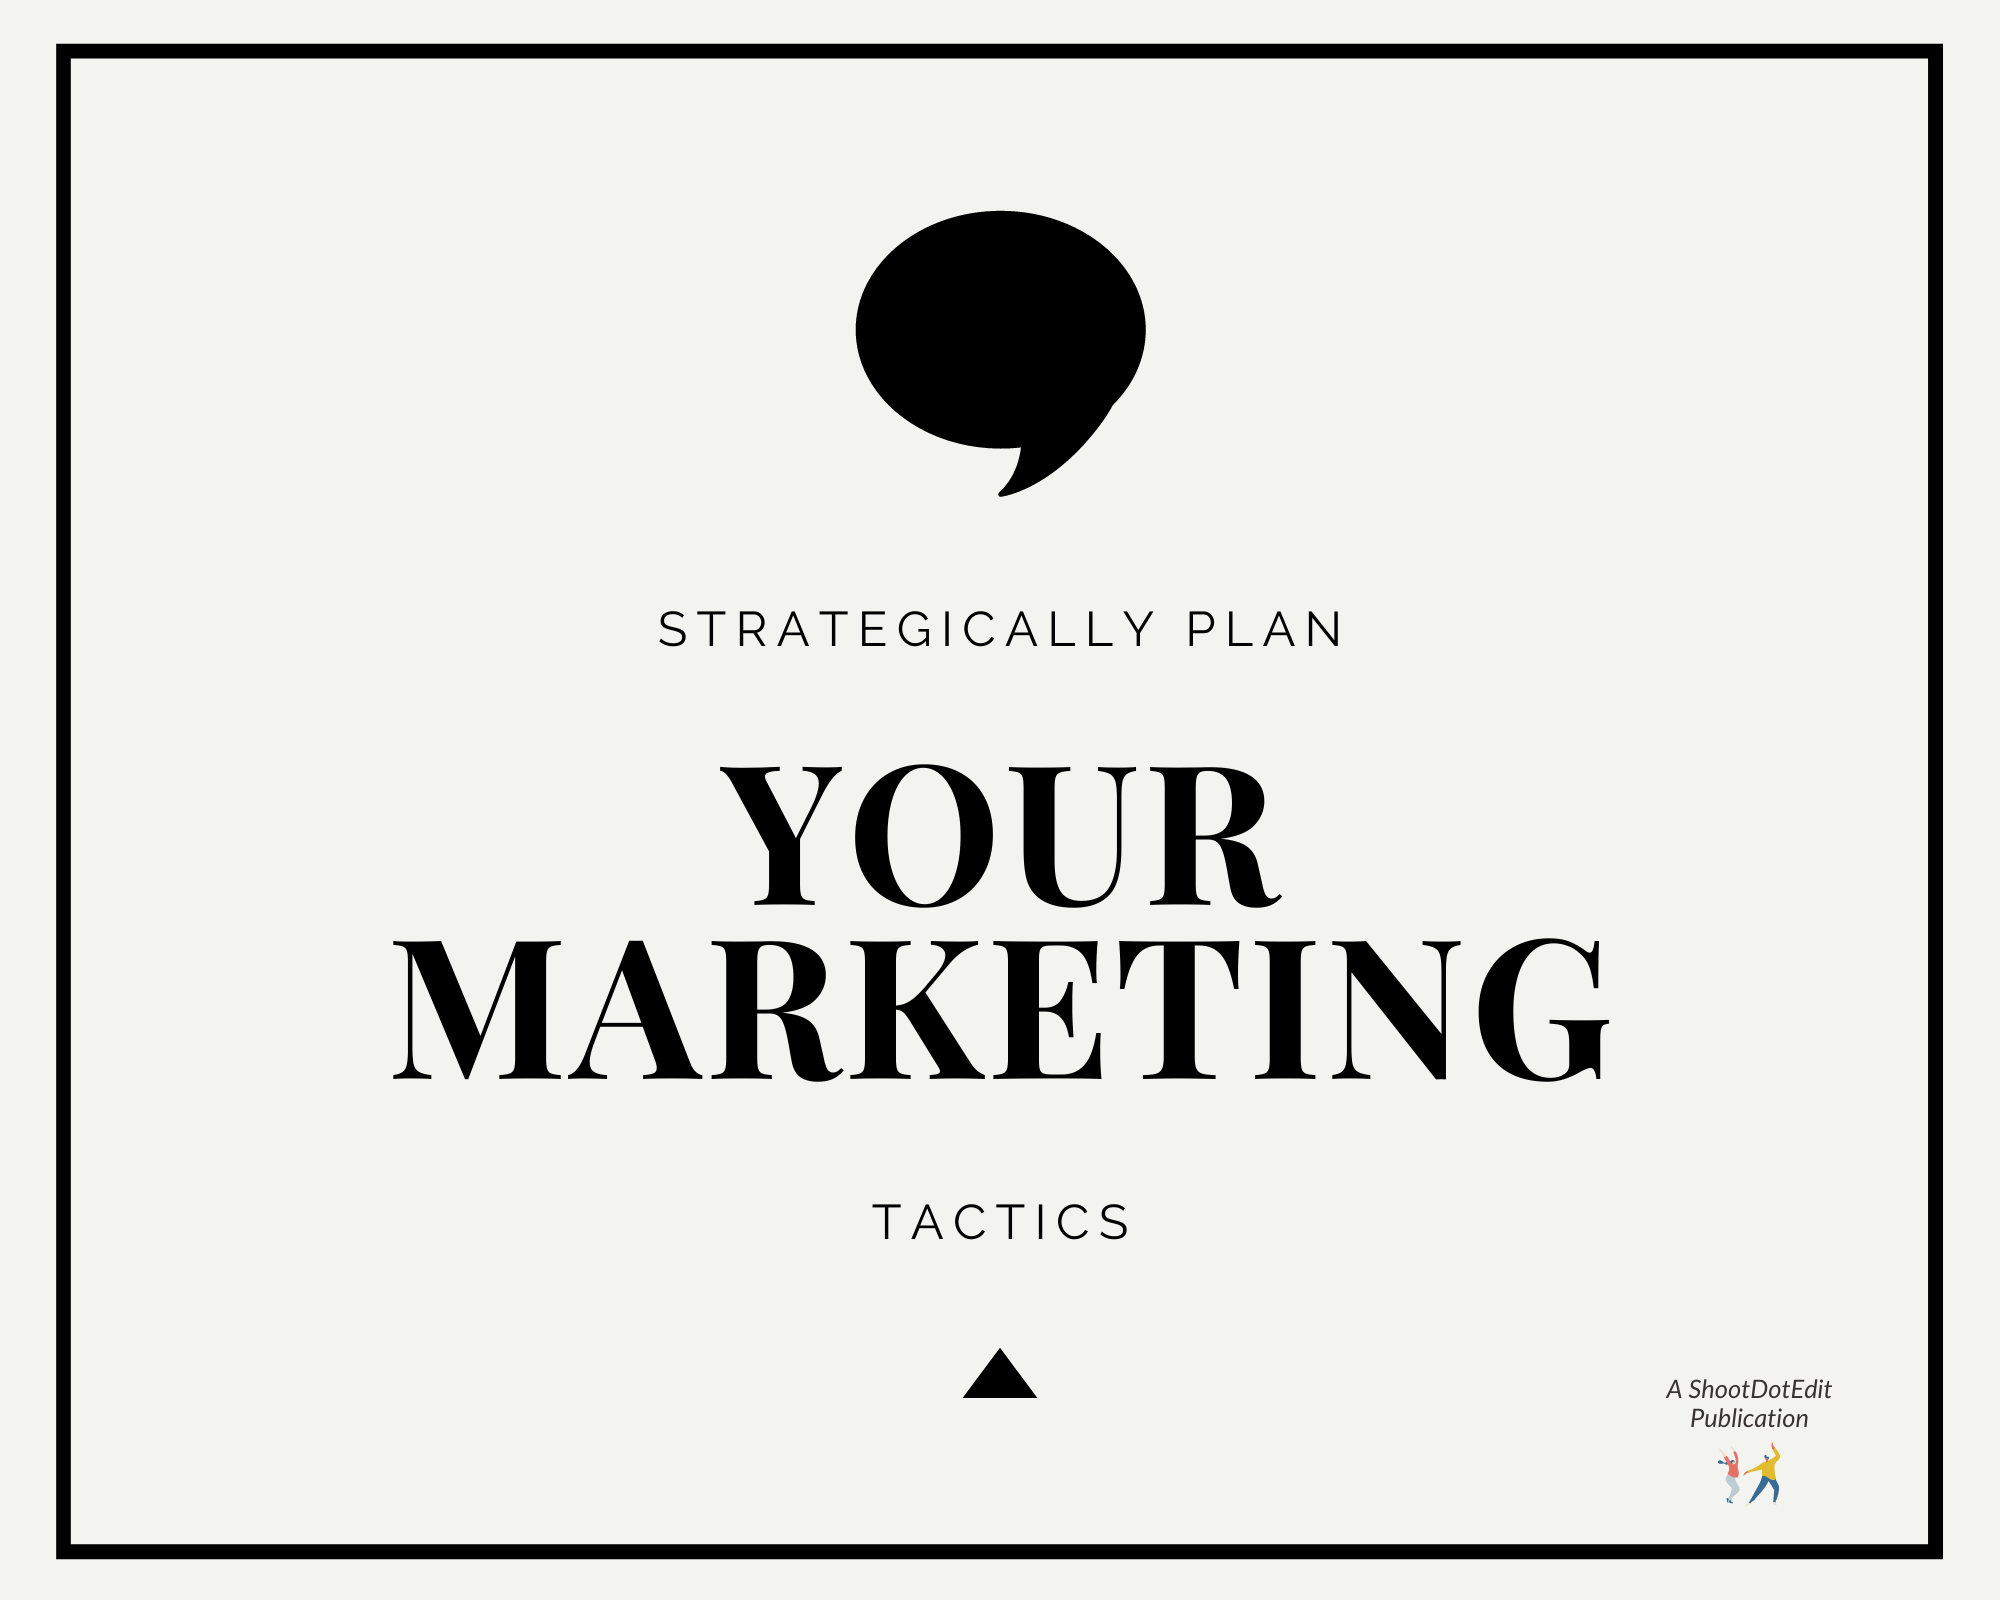 Infographic stating strategically plan your marketing tactics